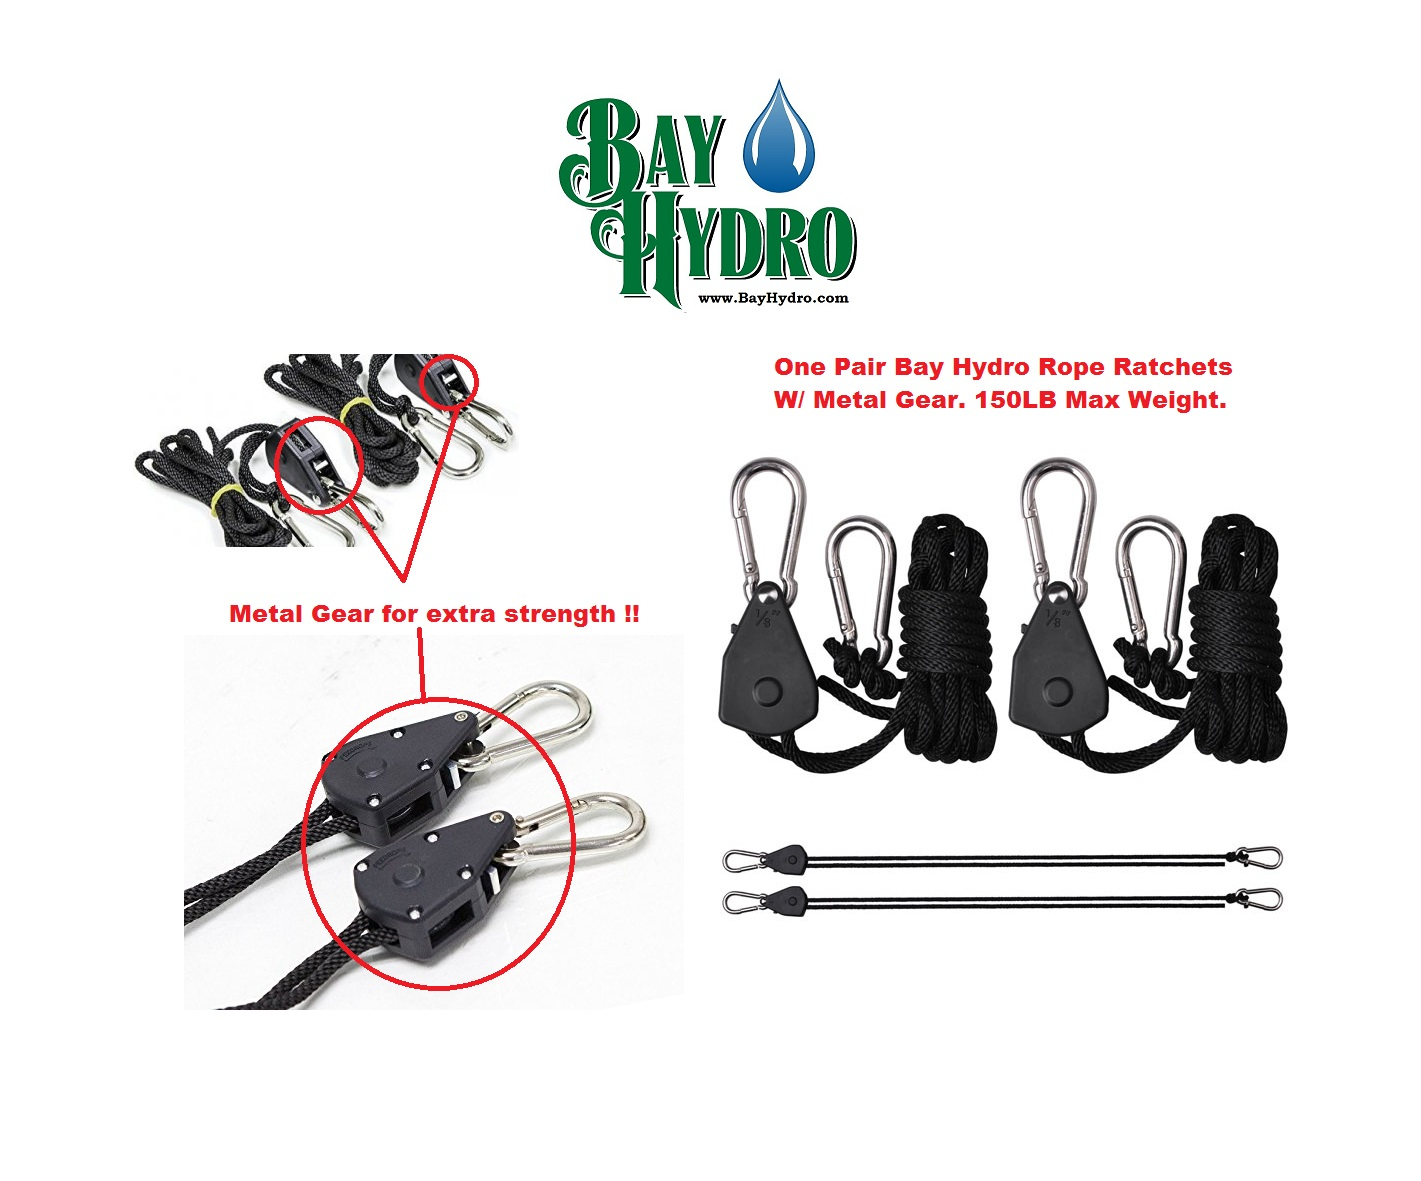 Bay Hydro Rope Ratchets W/ Metal Gears